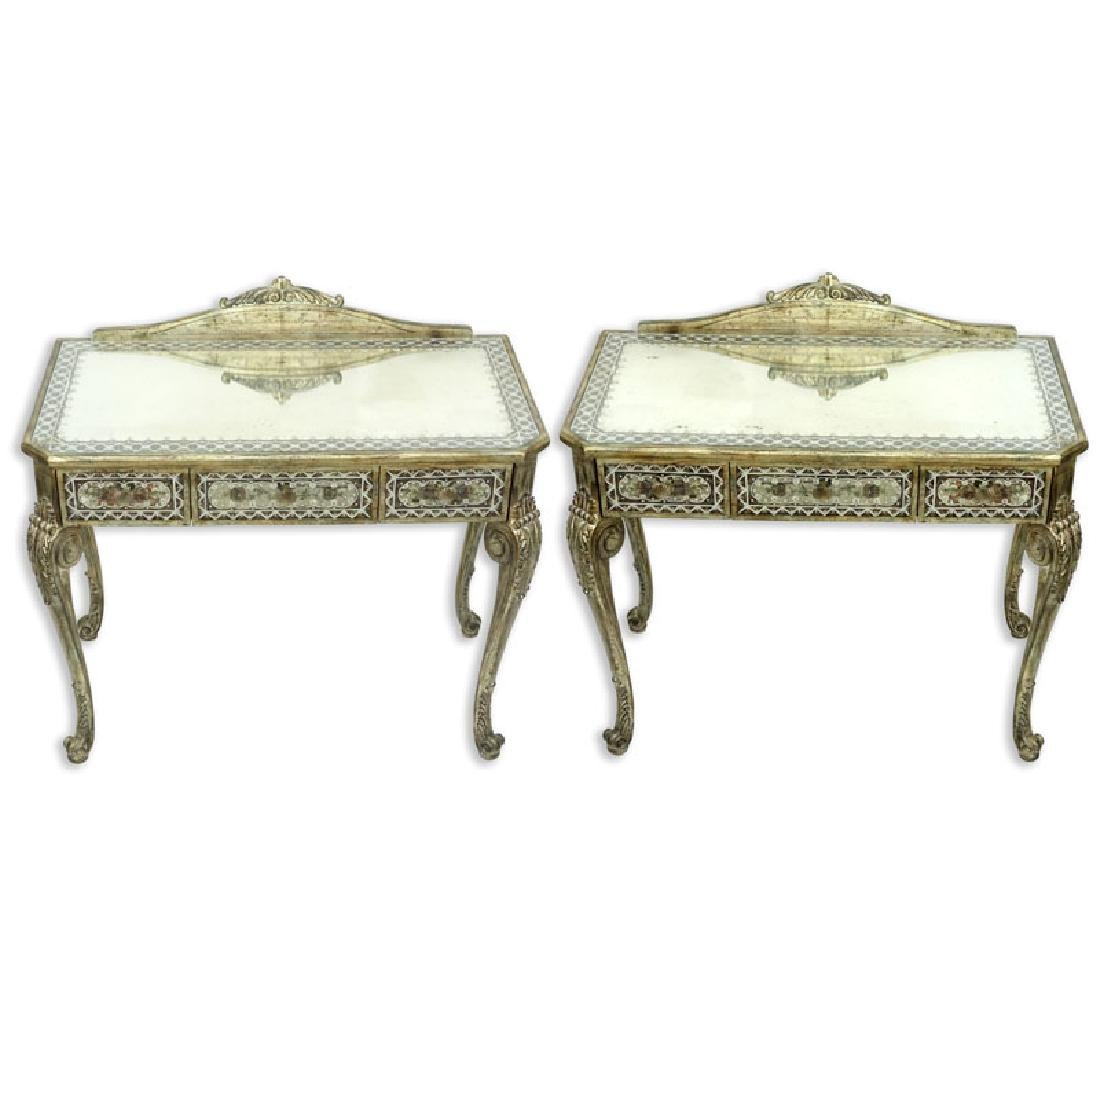 Pair of La Barge Venetian Style Mirrored, Painted, and